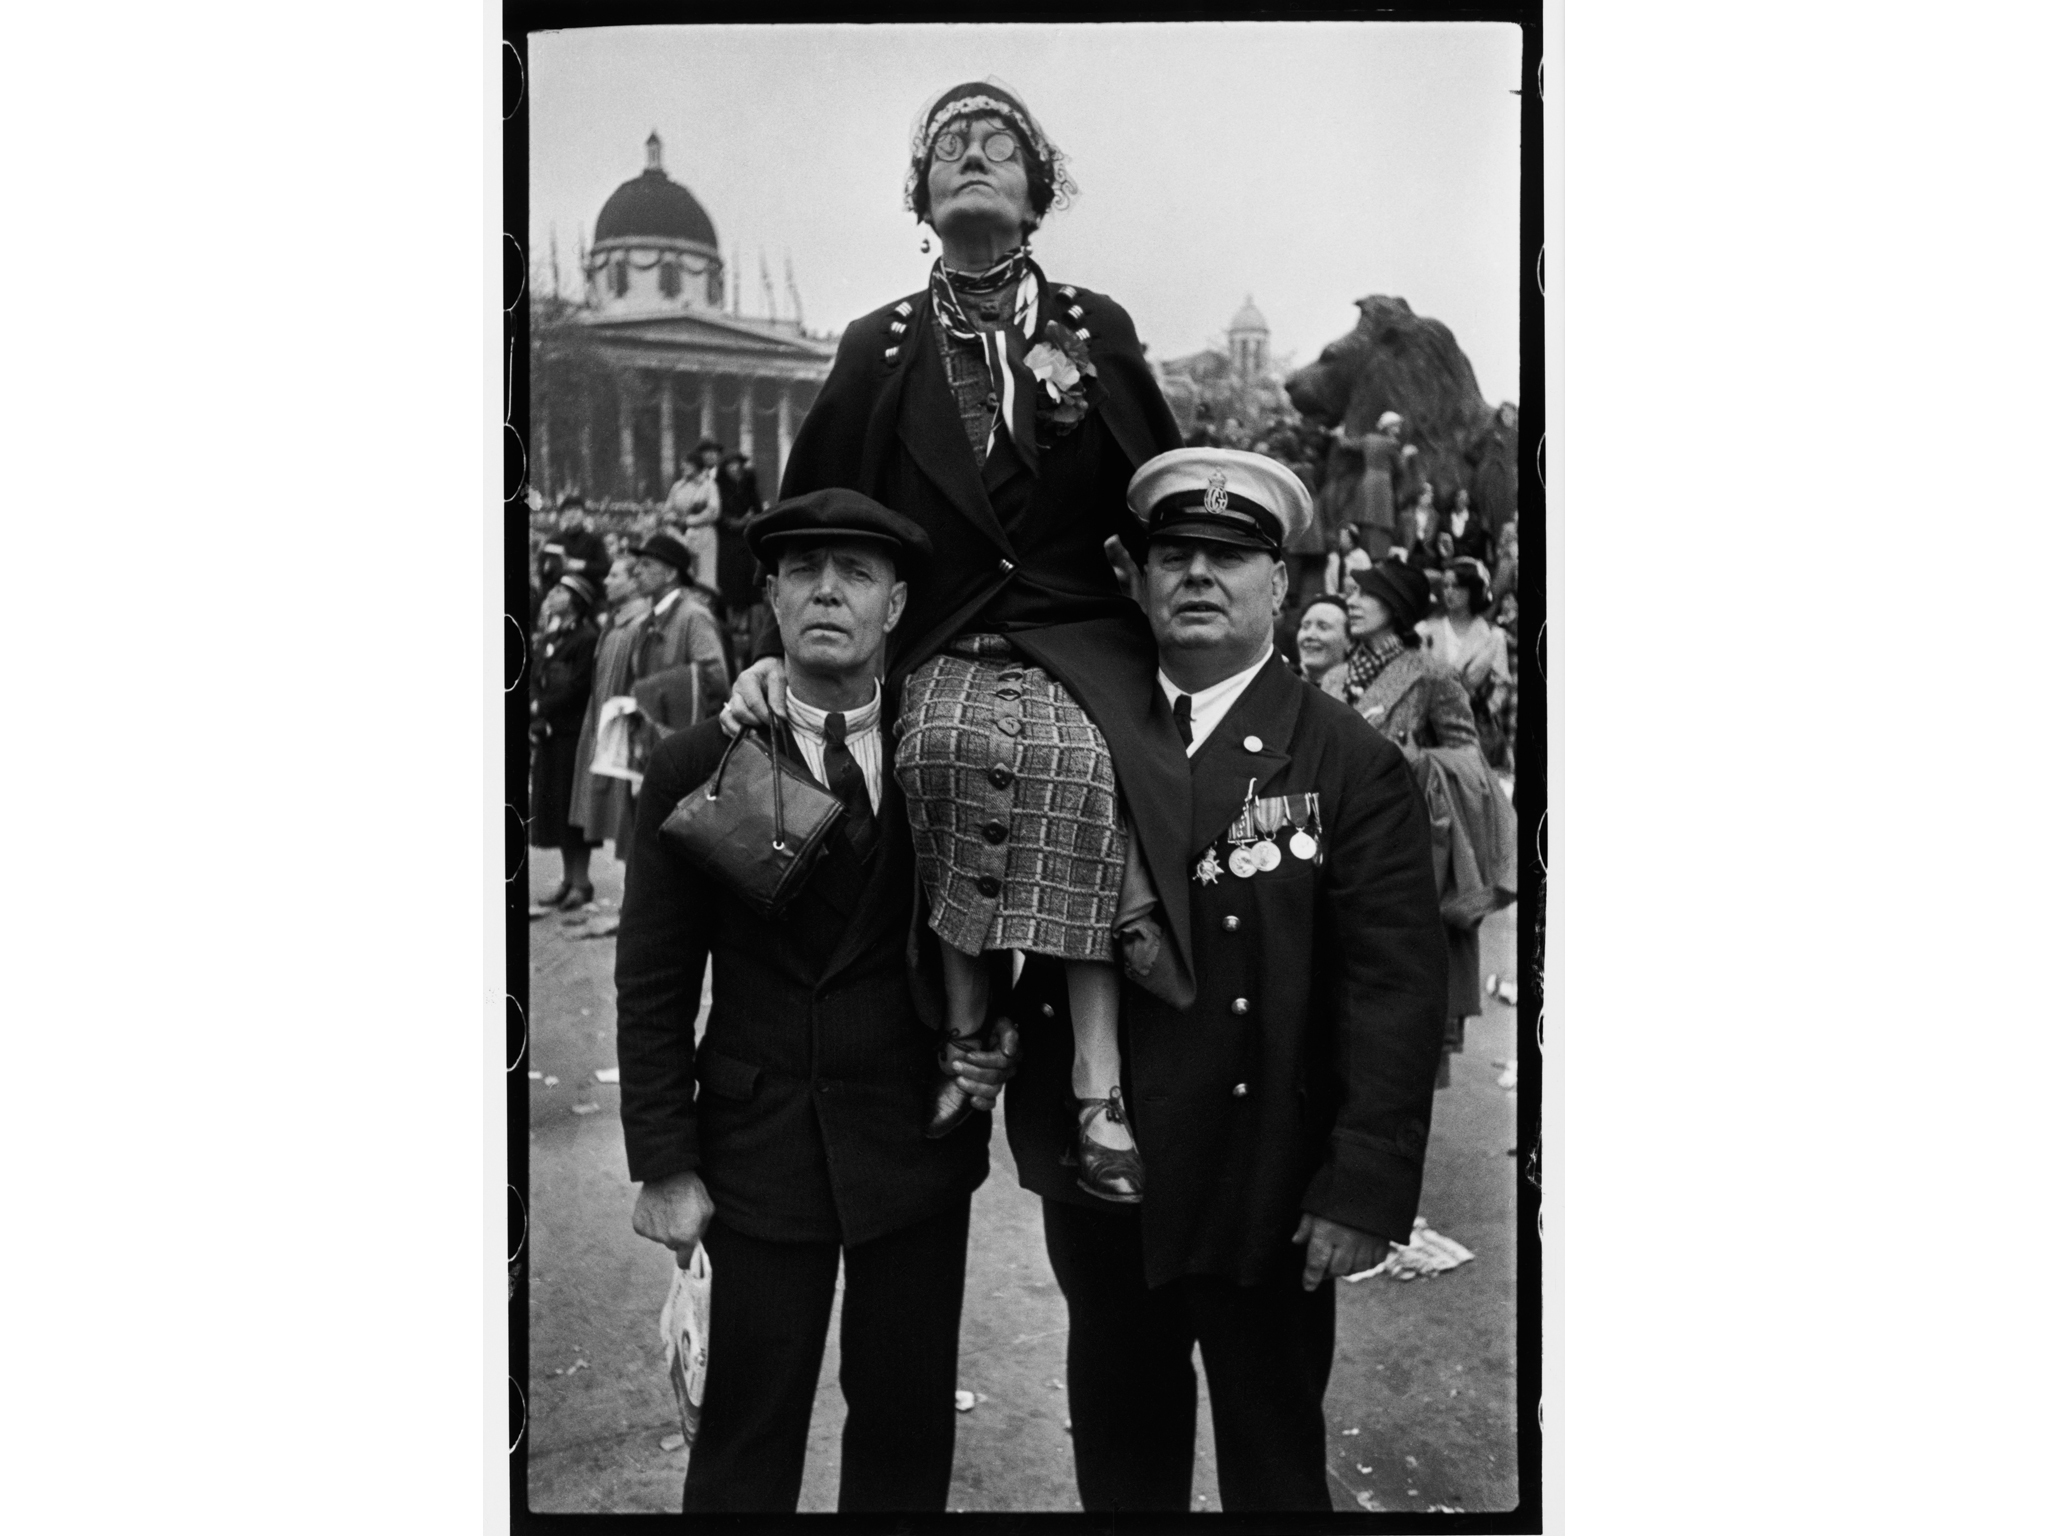 Best London photos: Henri Cartier-Bresson: 'Coronation of King George VI, Trafalgar Square, London, 12 May, 1937